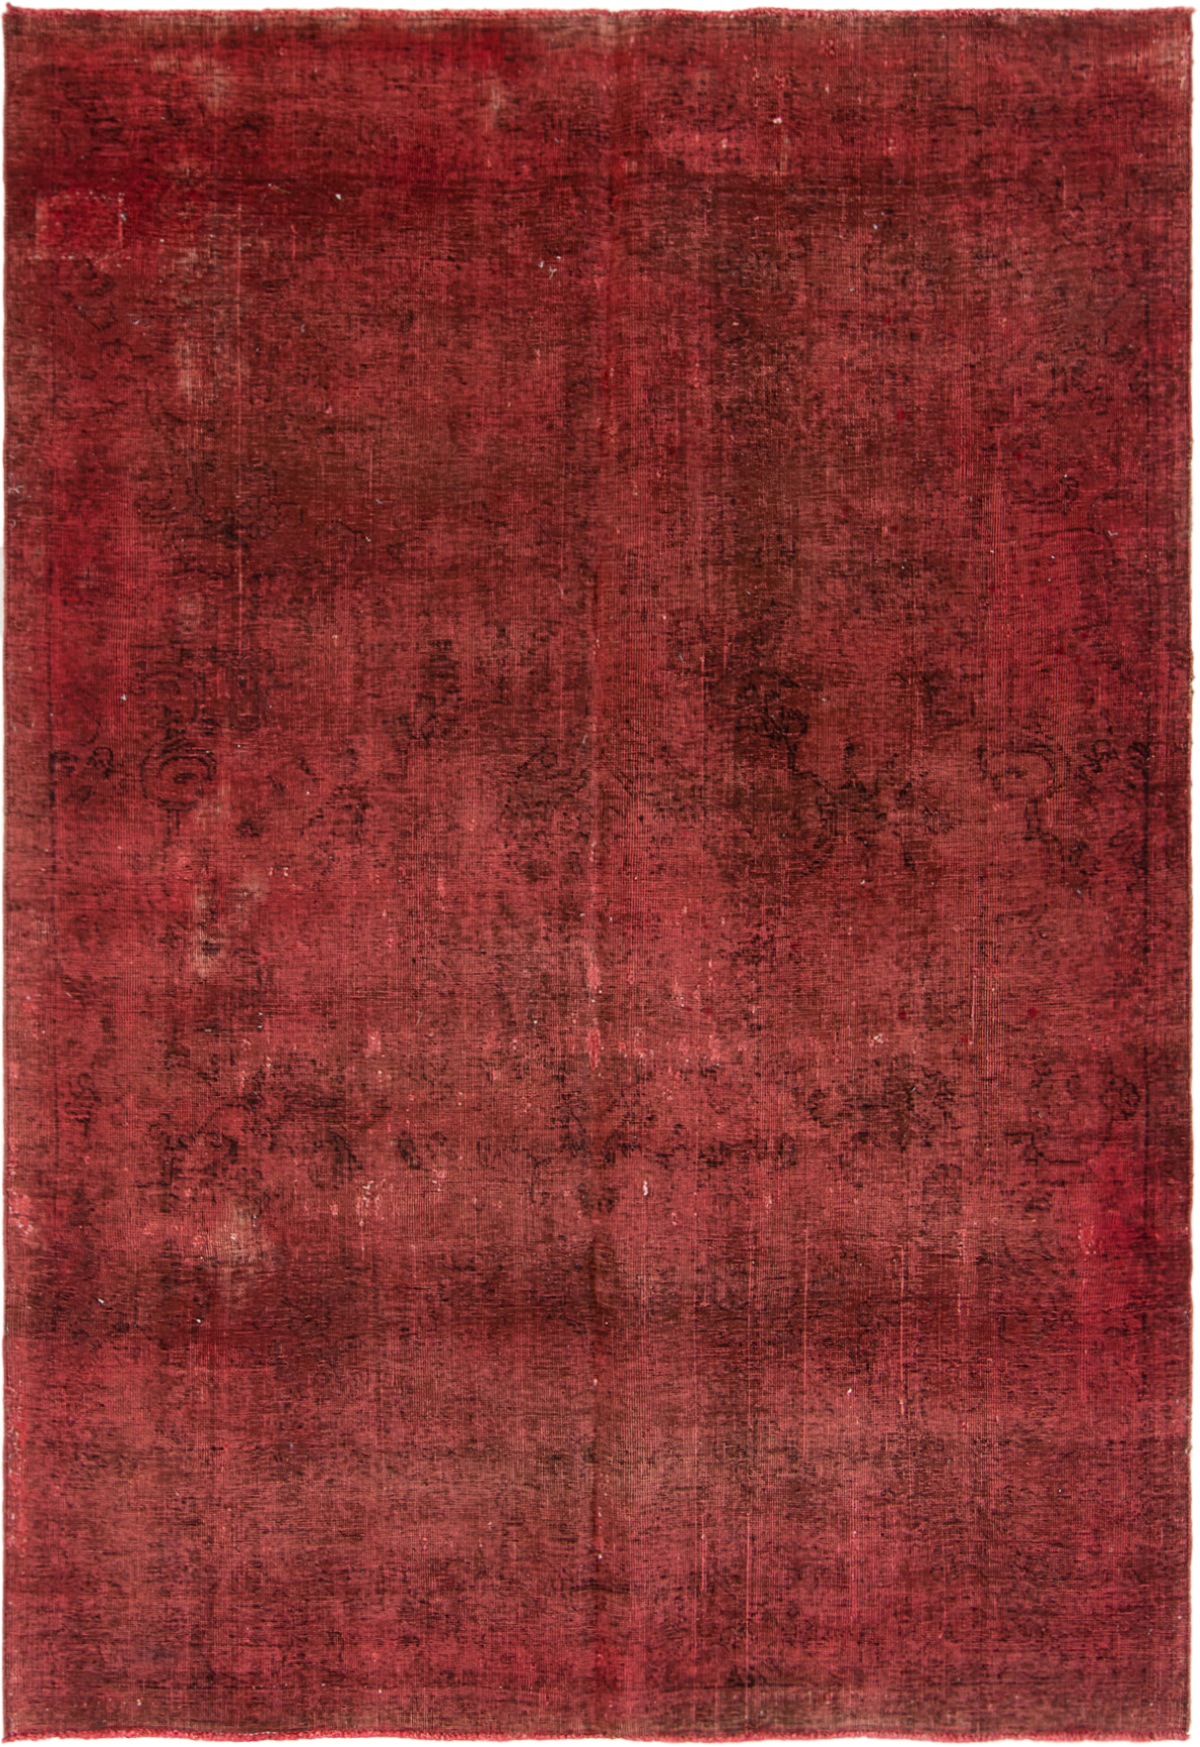 """Hand-knotted Vogue Red Wool Rug 6'5"""" x 9'3"""" Size: 6'5"""" x 9'3"""""""